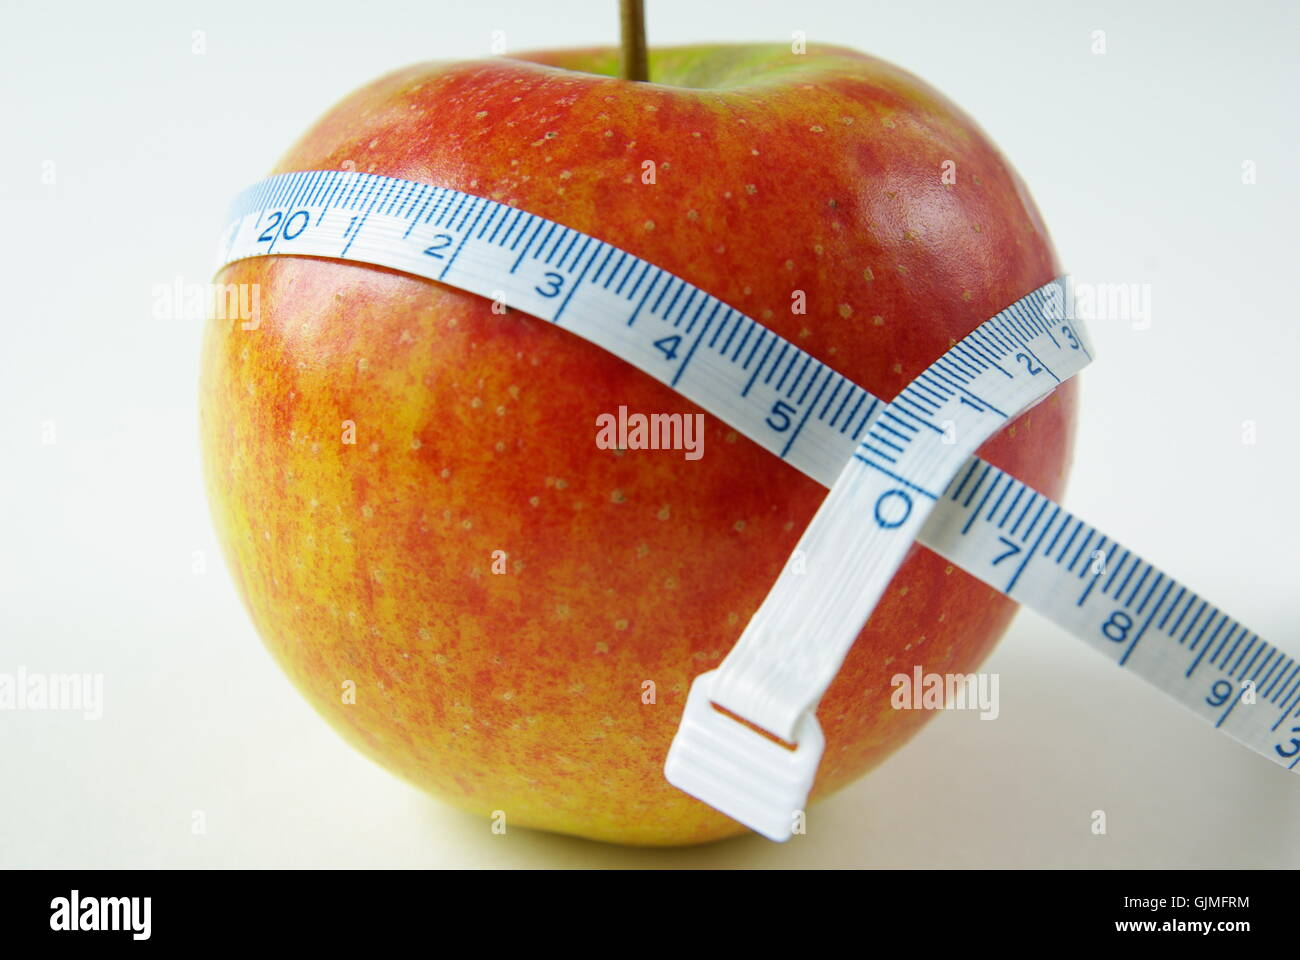 apple with measuring tape as a suggestion for a diet - Stock Image